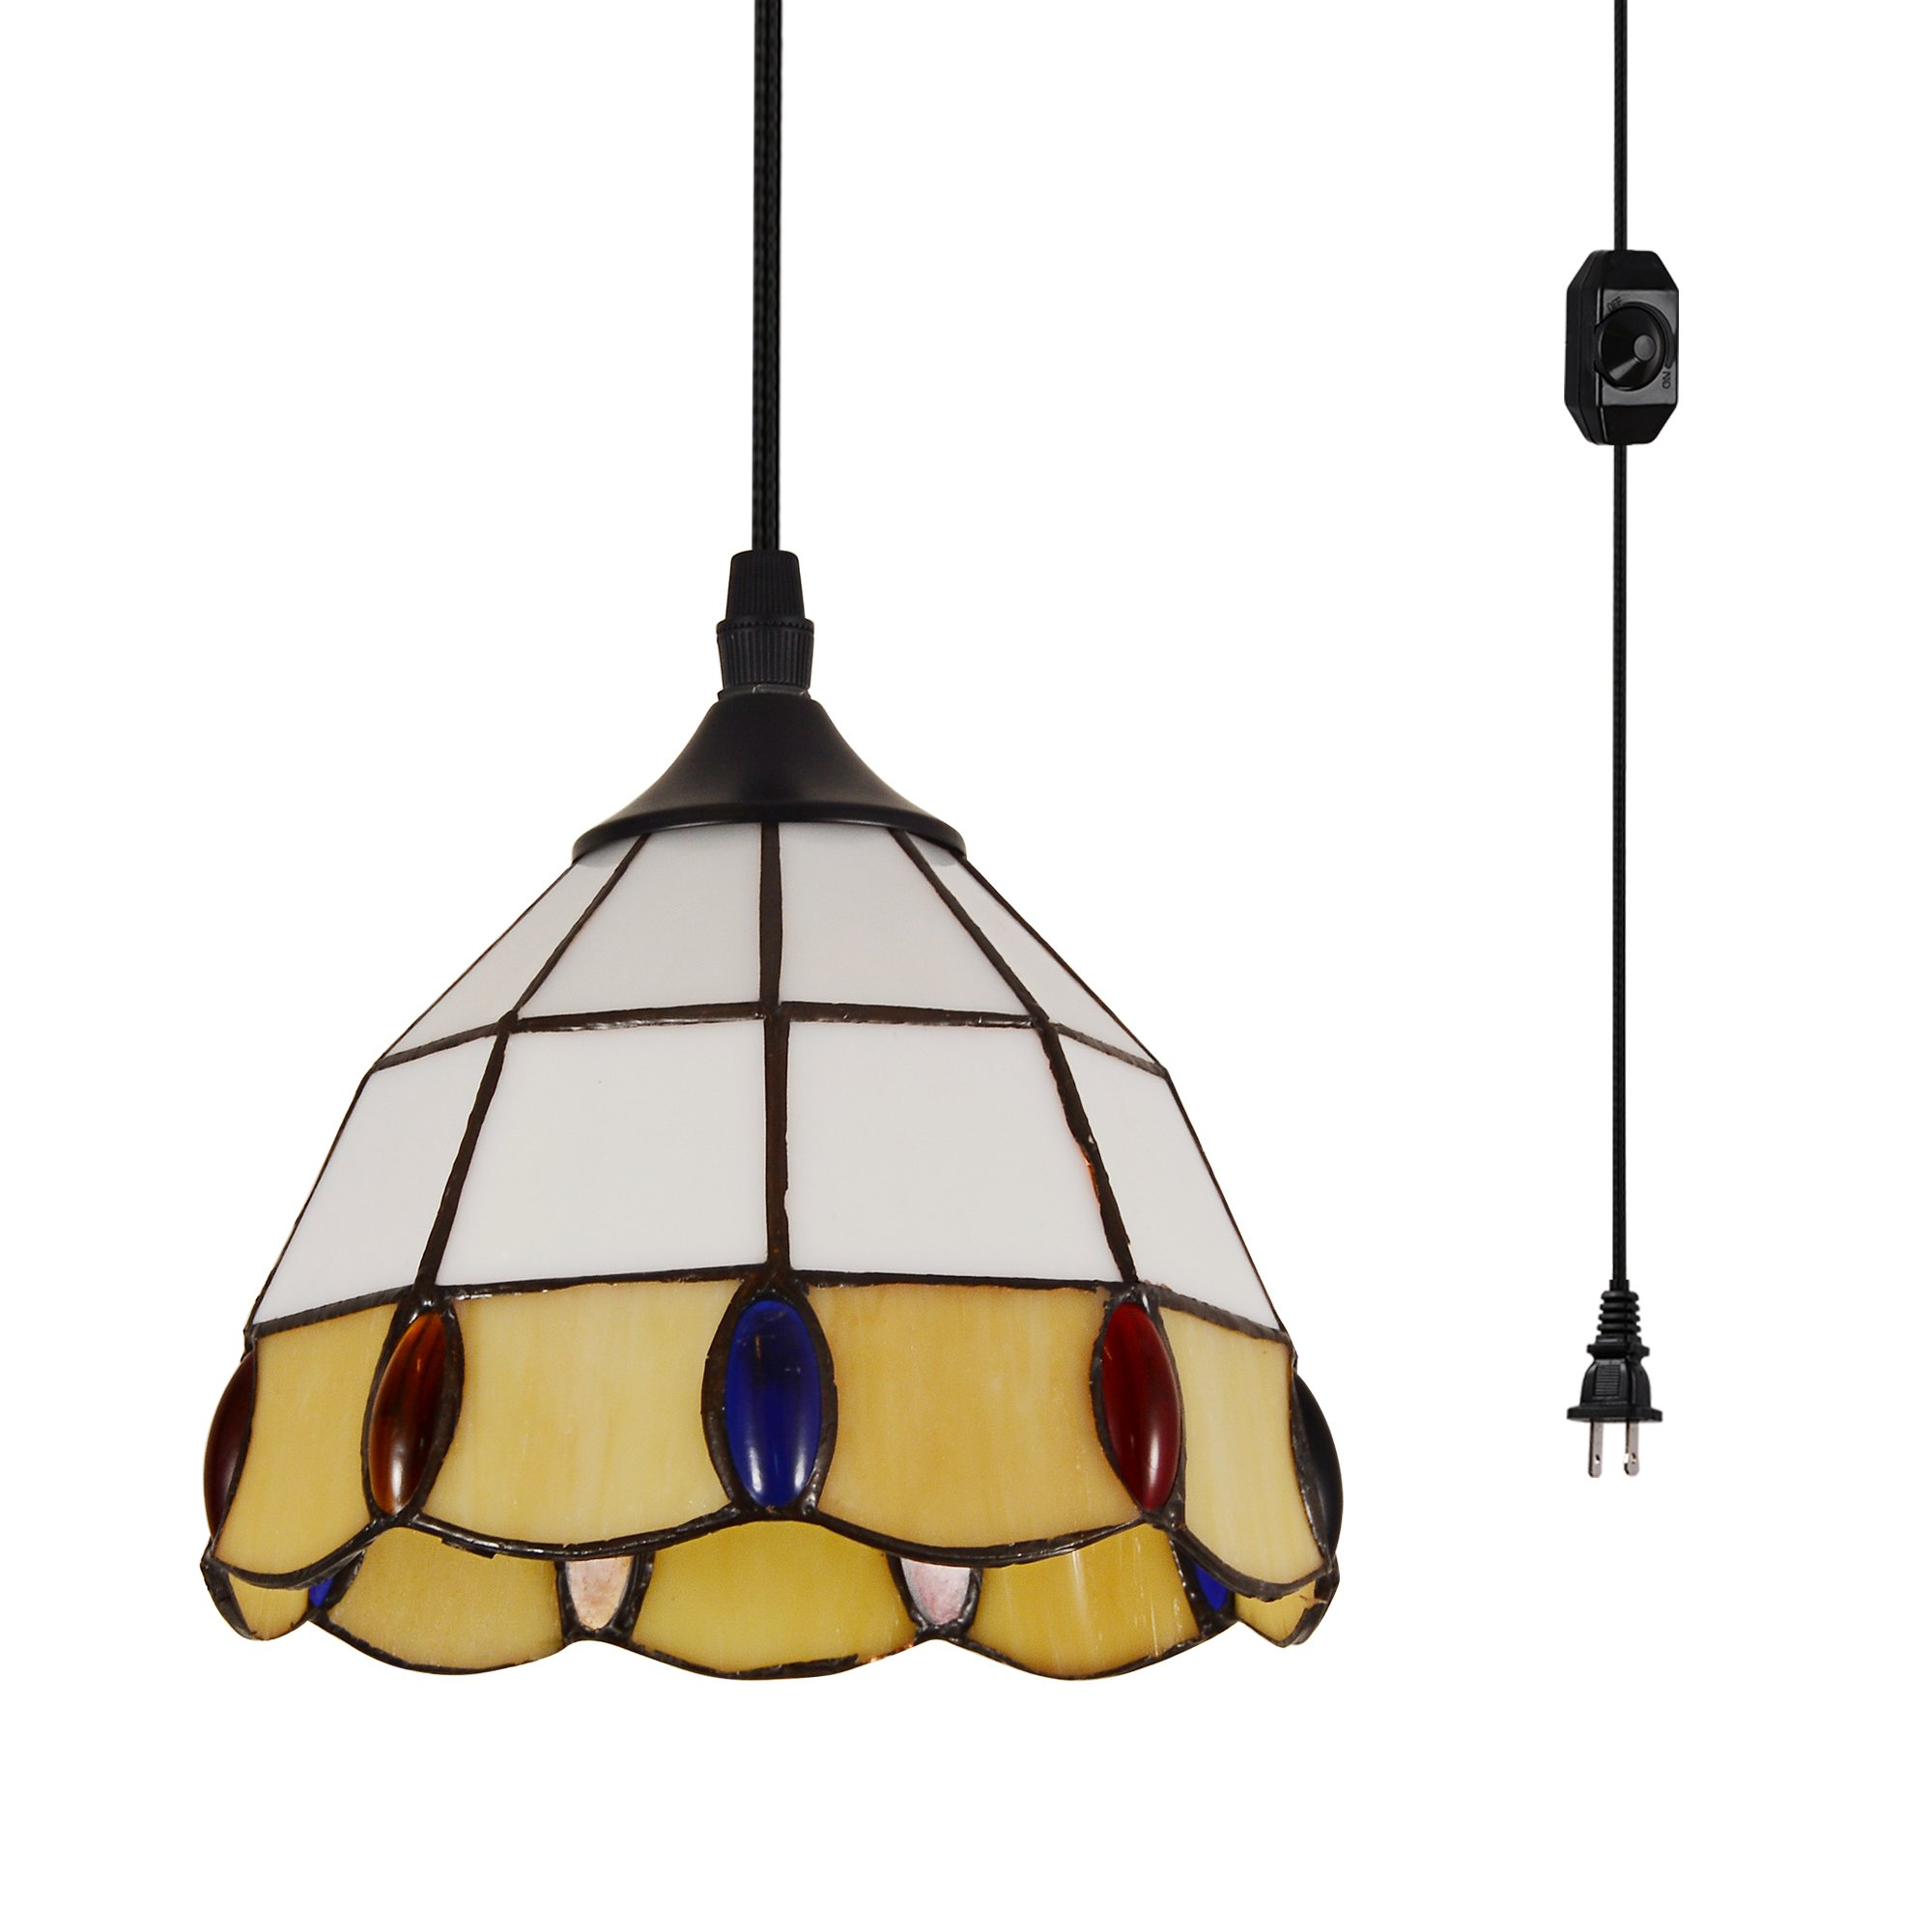 HMVPL Vintage Tiffany Acrylic Pendant Ceiling Light with 16.4 Ft Plug in Cord and On/Off Dimmer Switch, Round Multicolored Swag Hanging Lamp for Kitchen Island Dining Room or Living Room